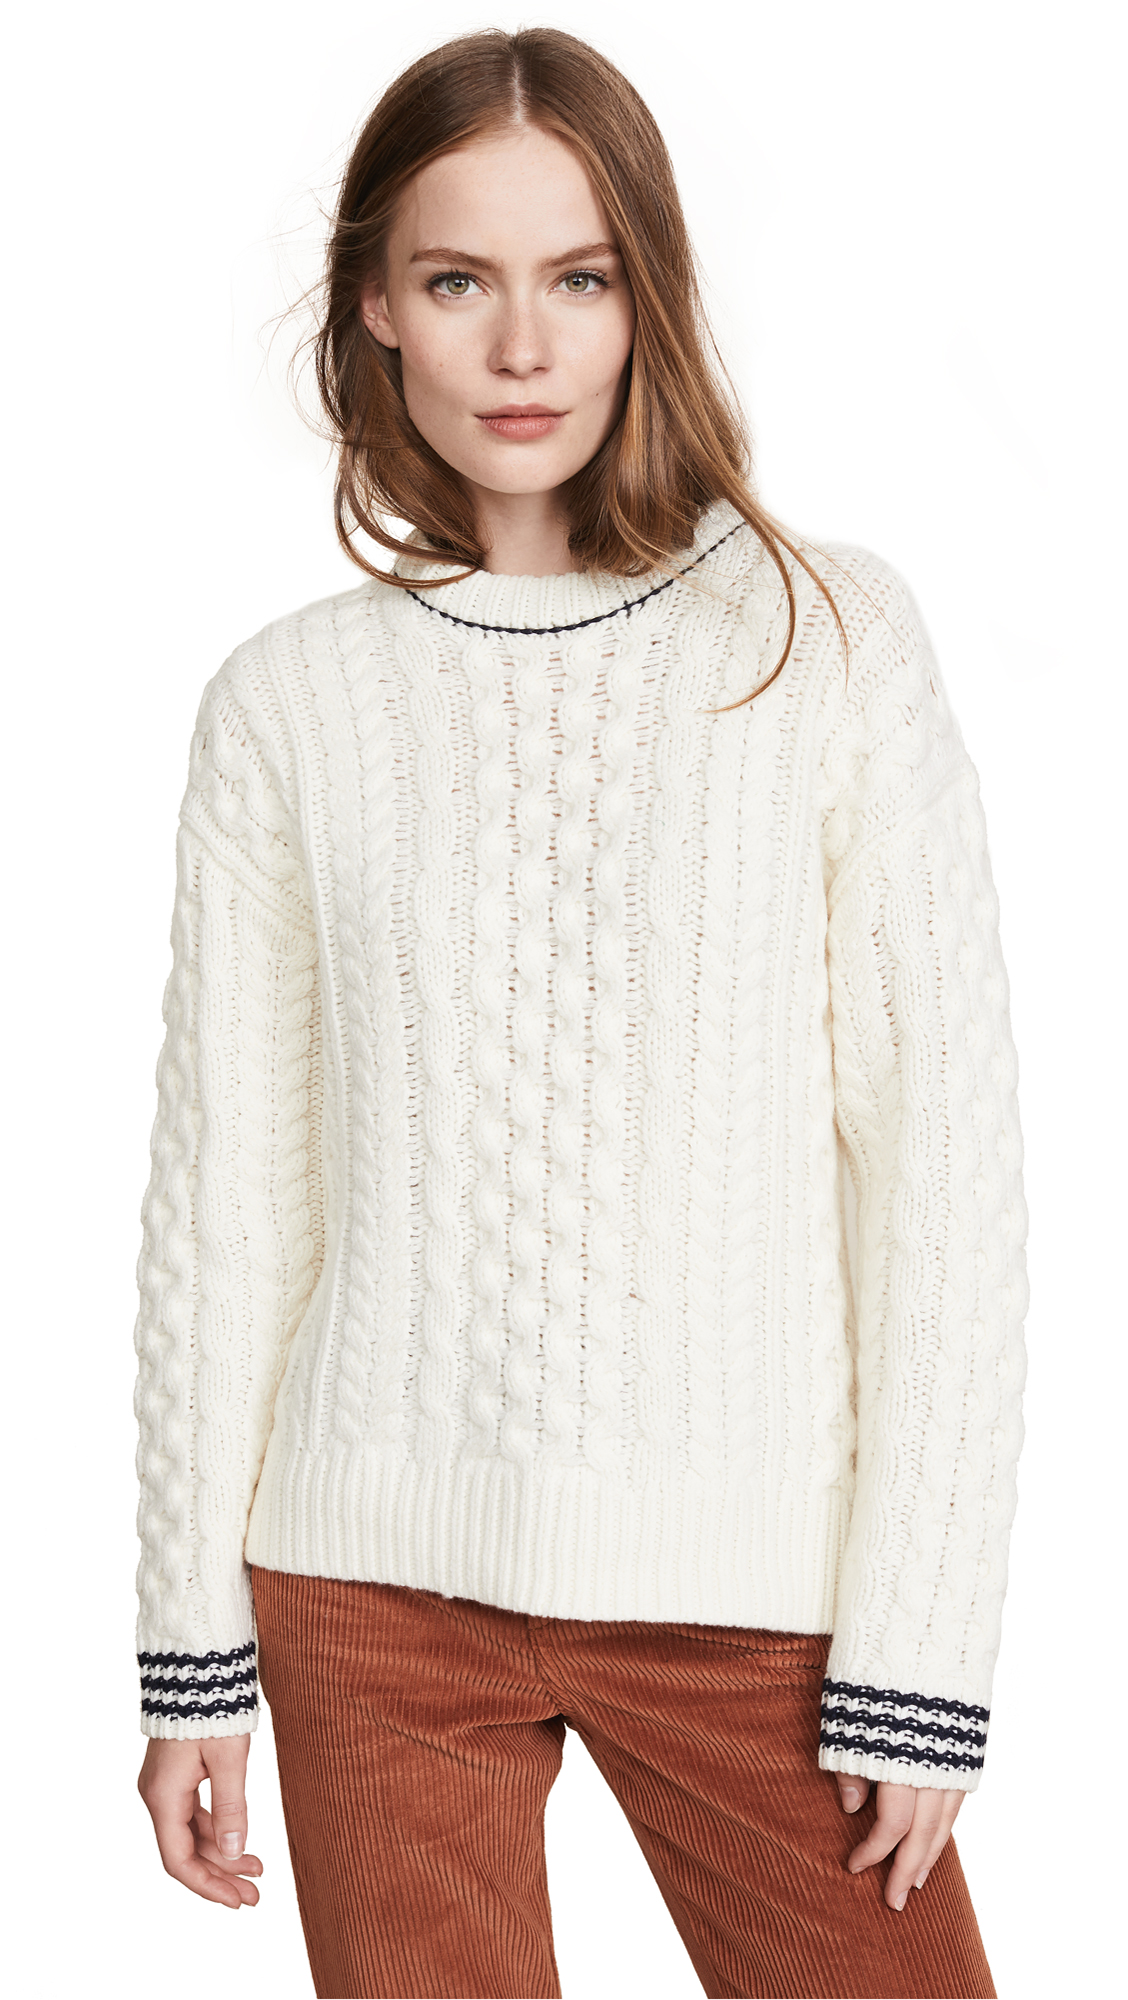 Rag & Bone Brighton Aran Sweater In Ivory/Navy